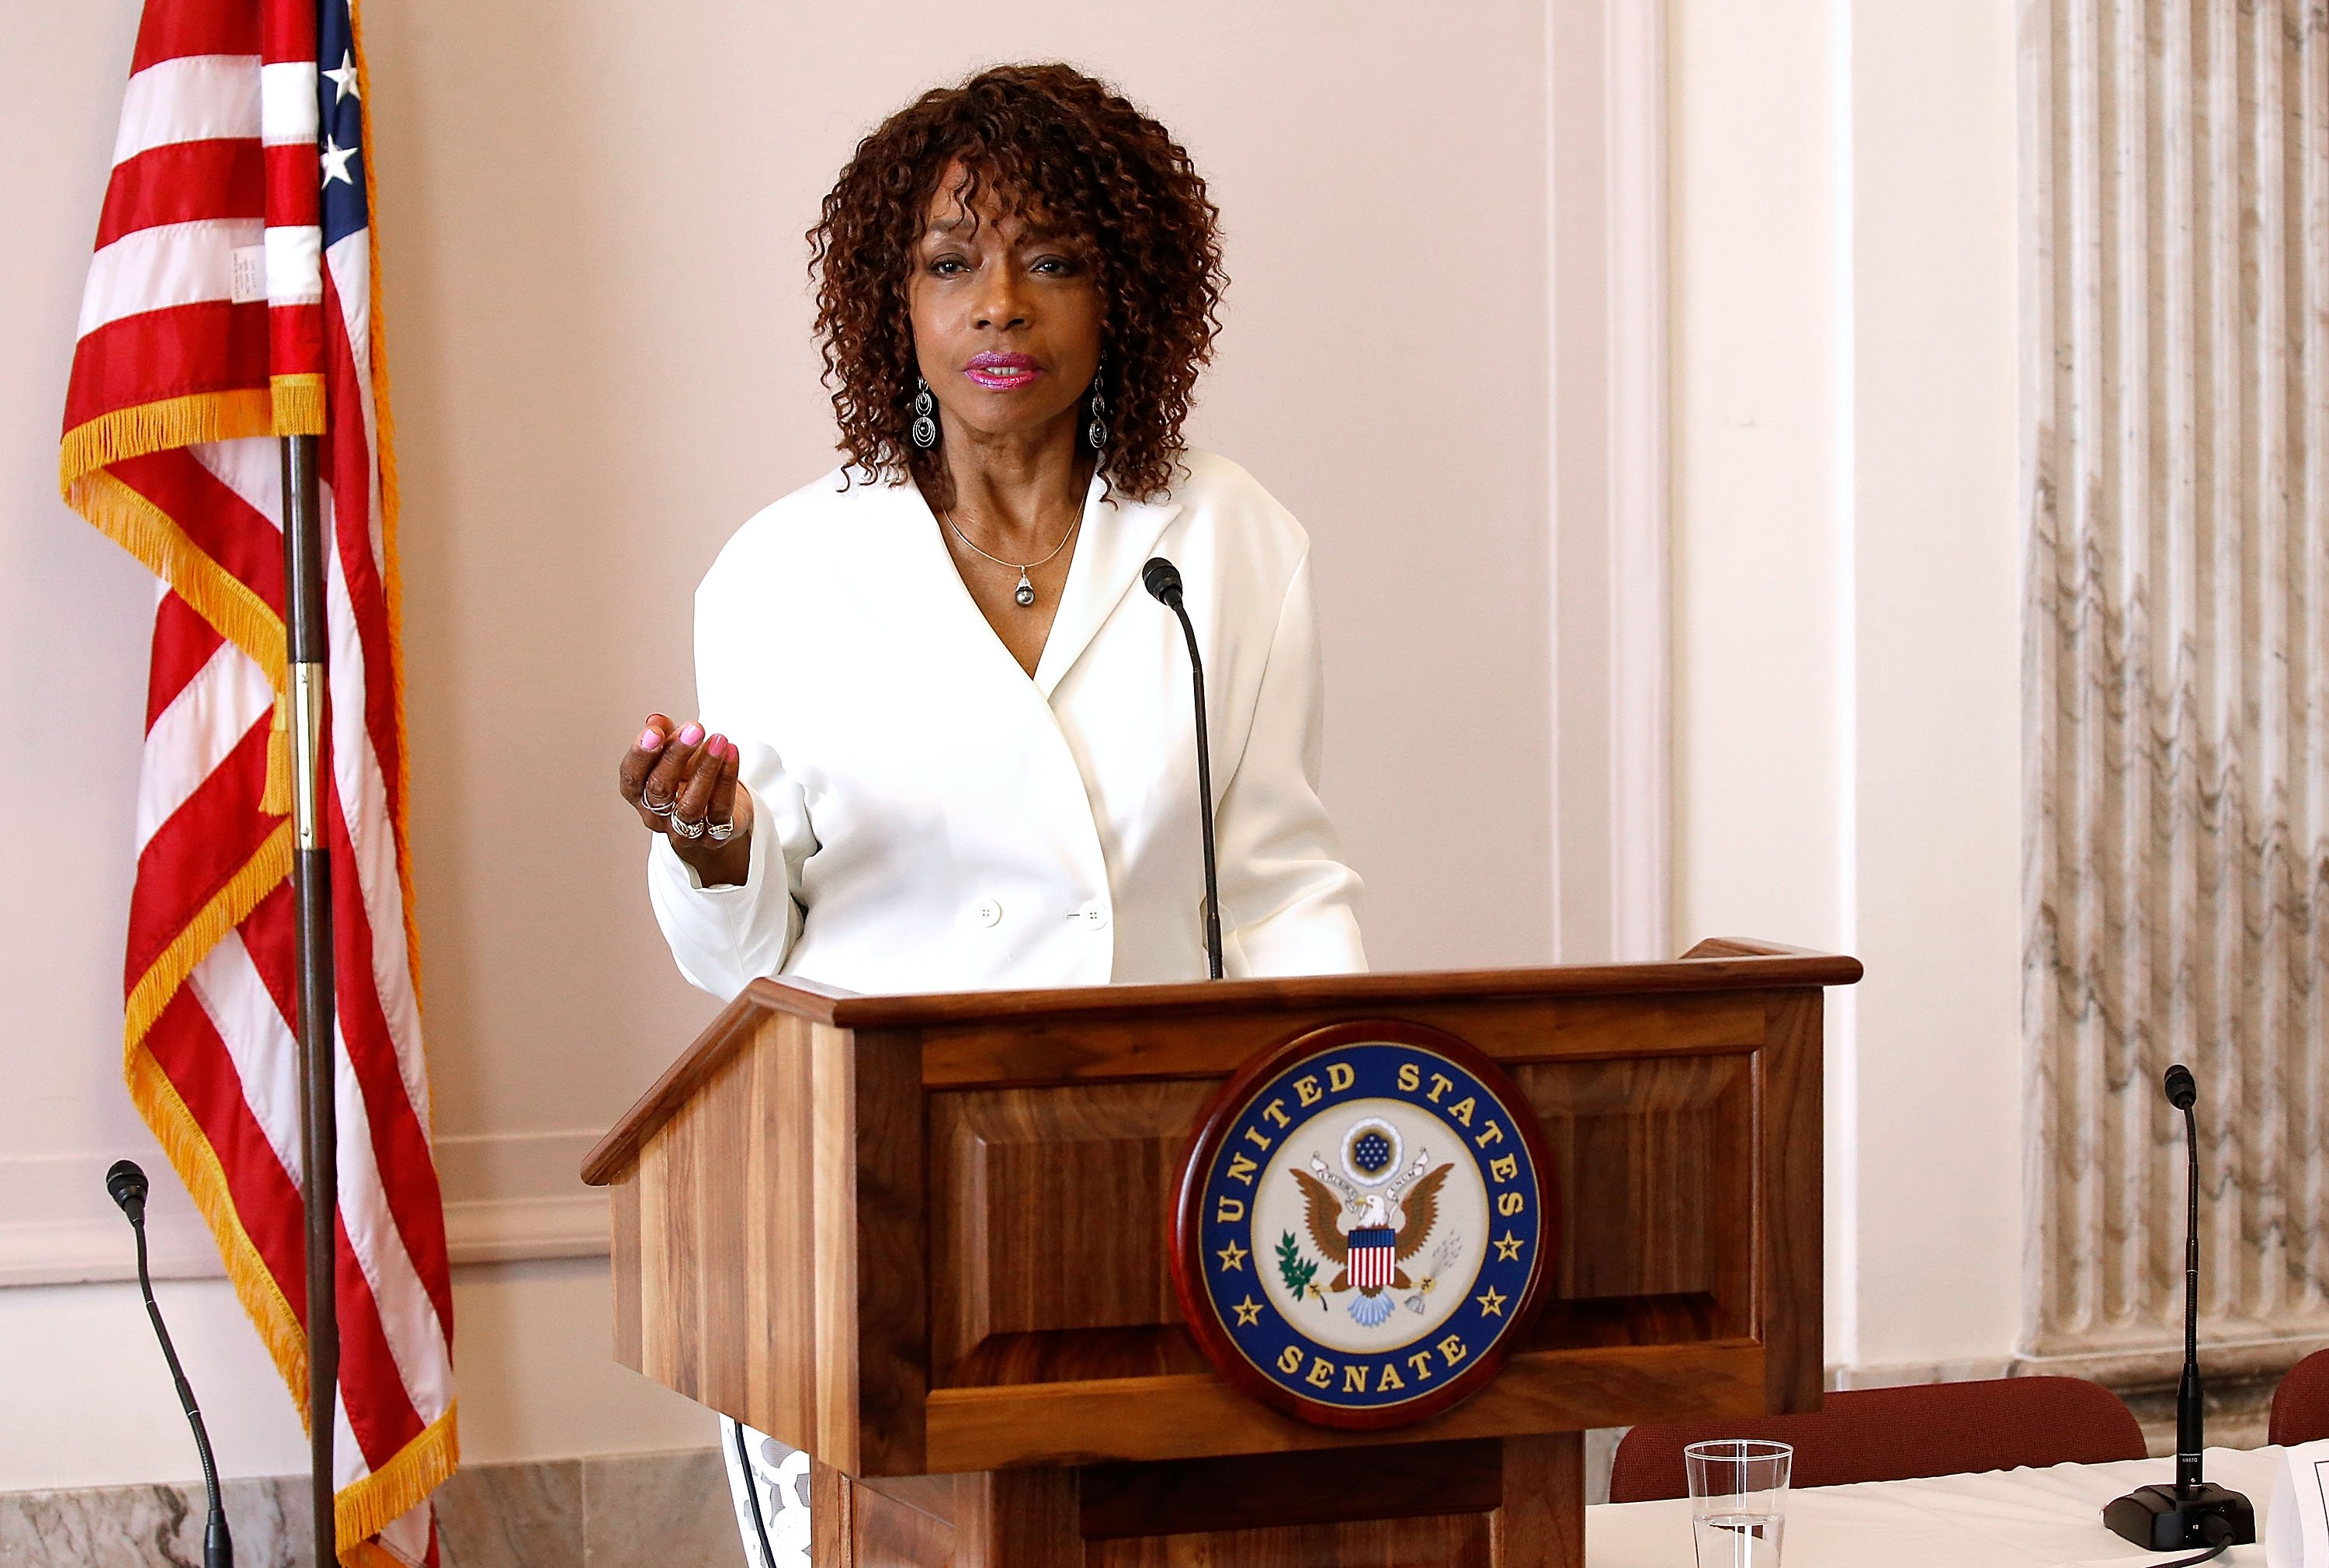 Beverly Todd speaks at the Media Solutions Summit at the Russell Senate Office Building on April 27, 2017. | Photo: GettyImages